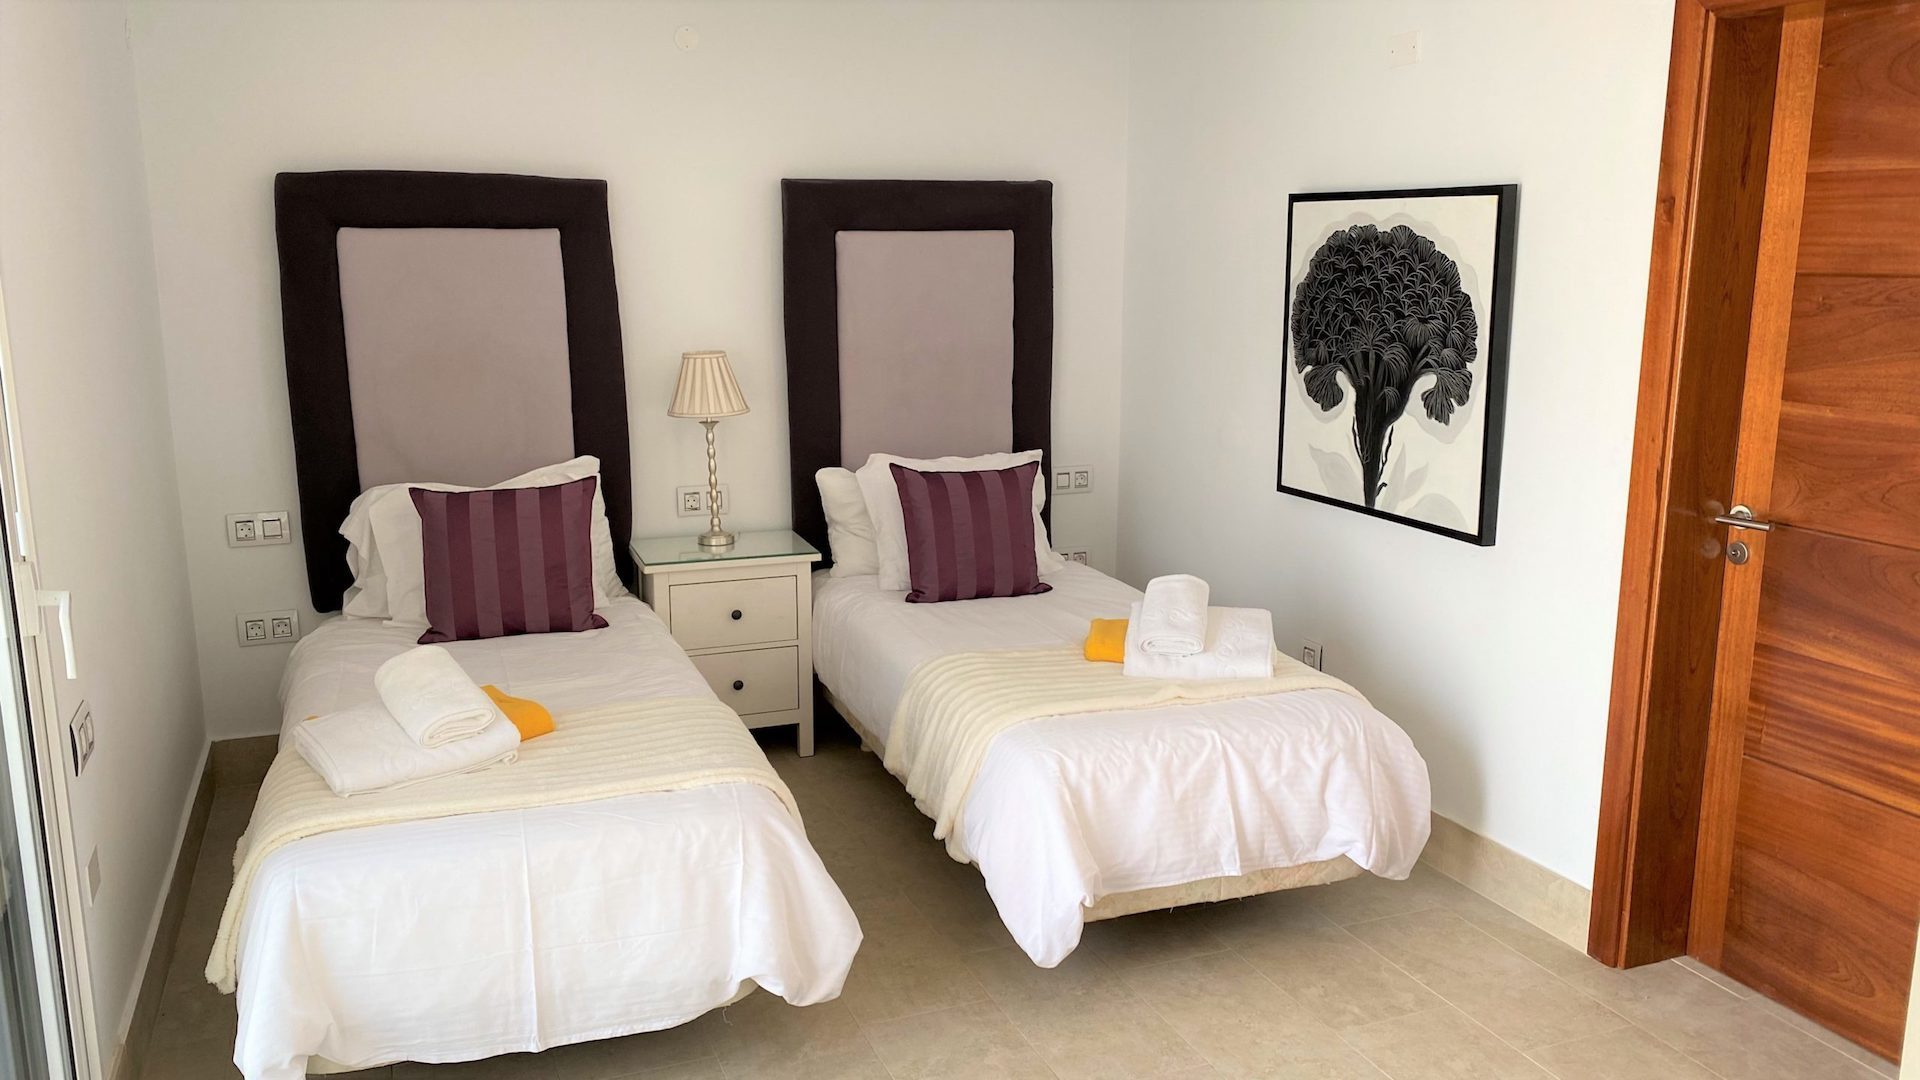 Whispering Palms - Twin Bedroom - 2 single beds